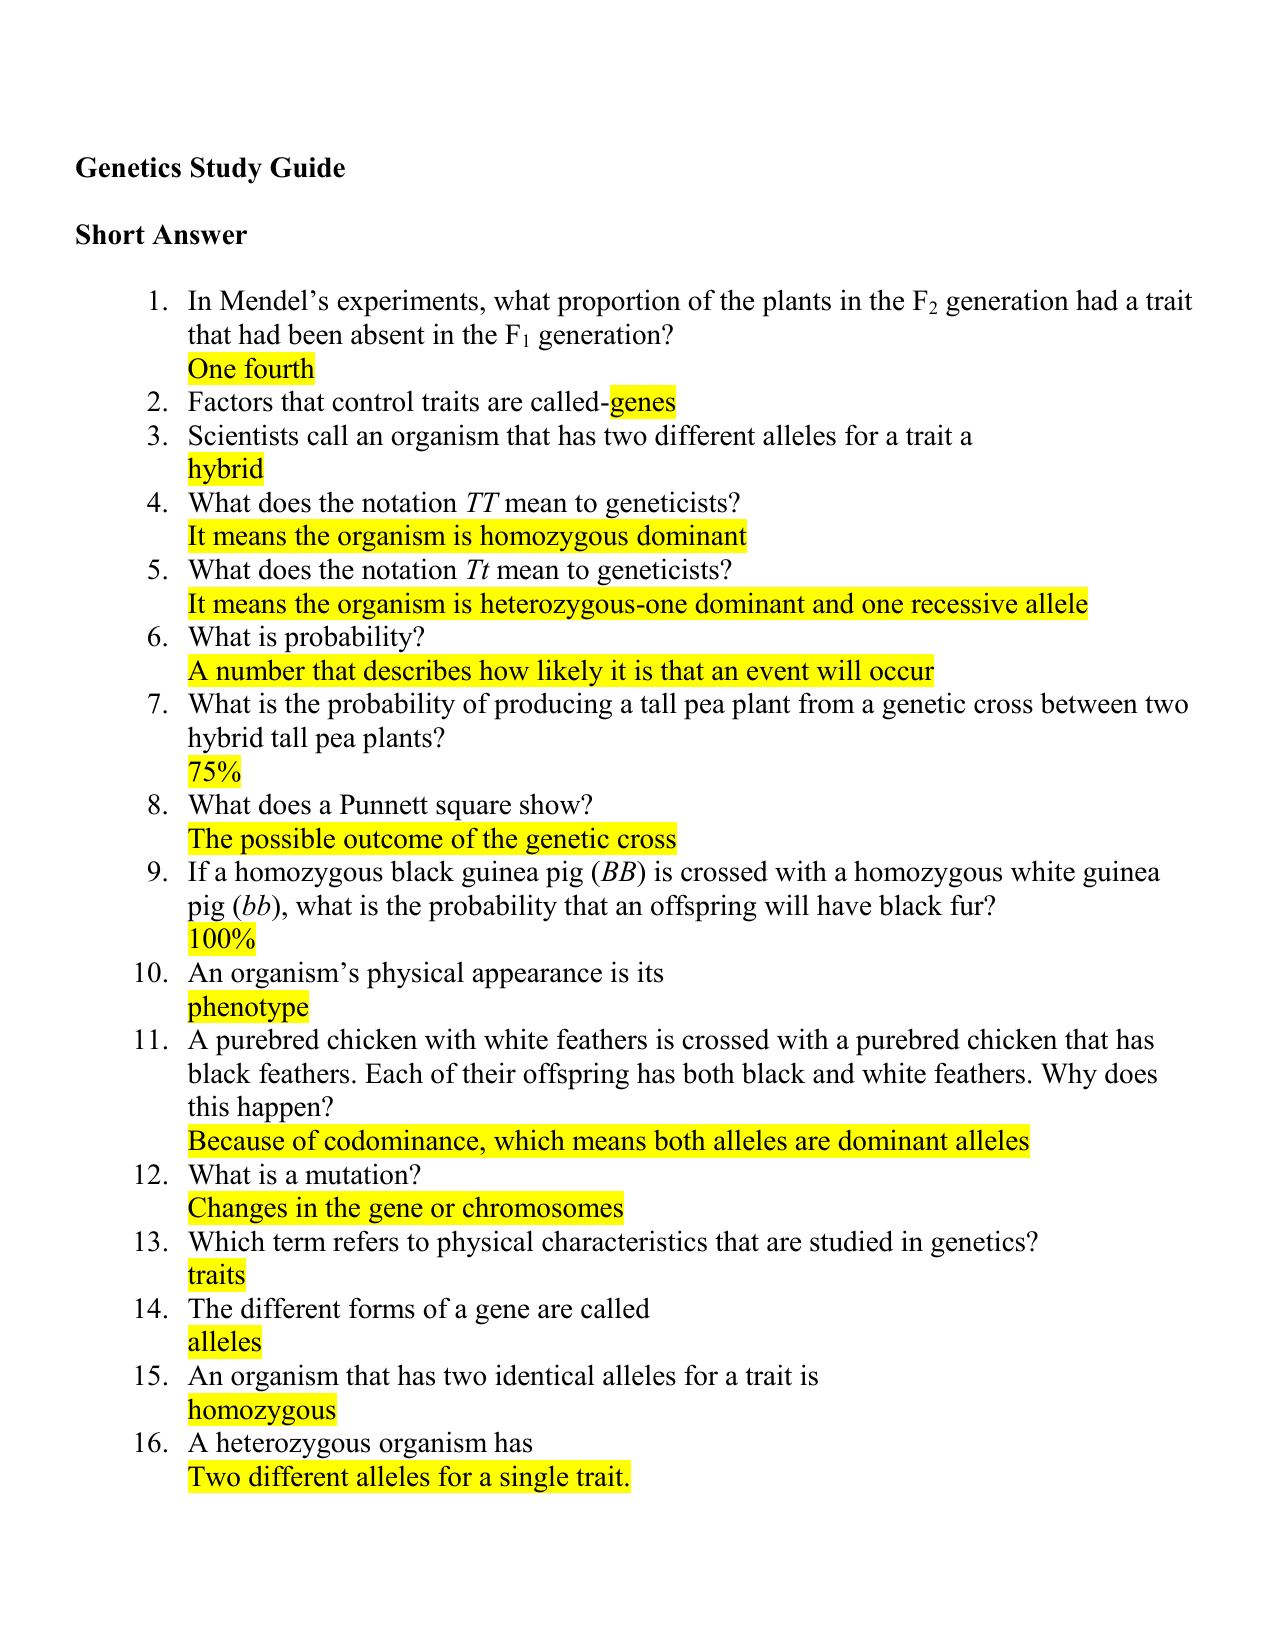 Genetics Study Guide Short Answer